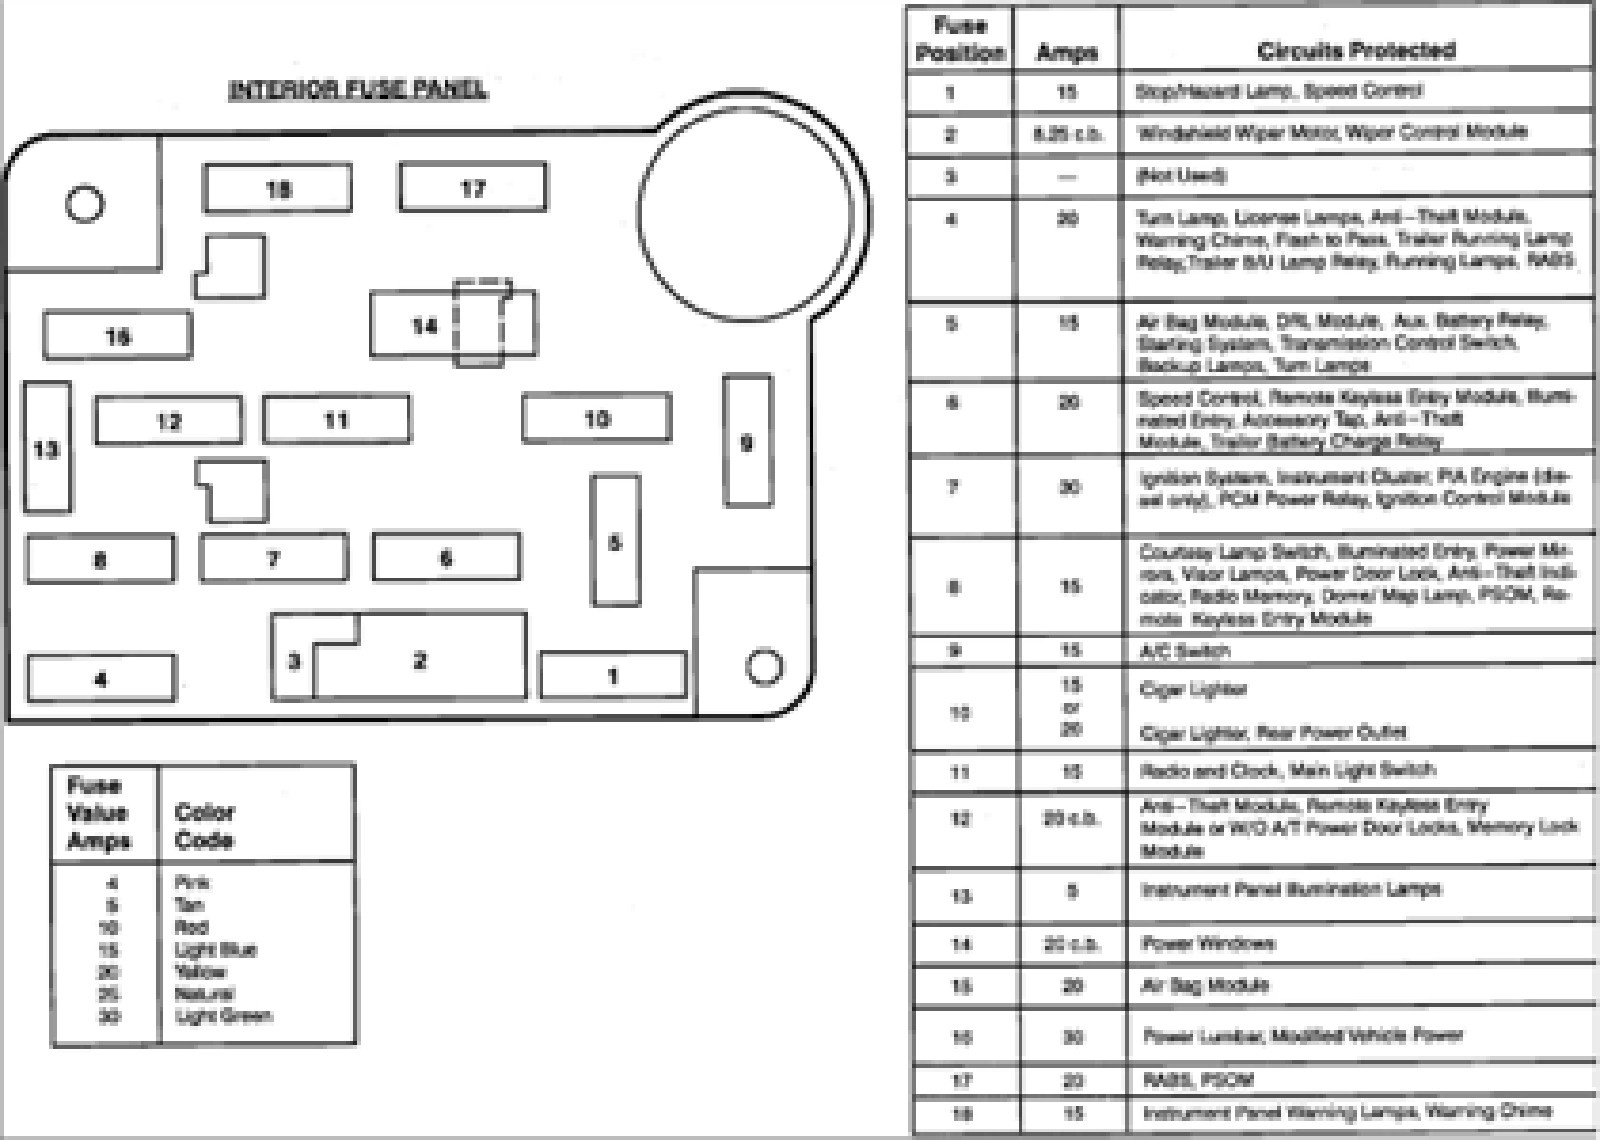 1998 F250 Fuse Box Wiring Diagram Libraries 1986 Ford Tempo 2 3 Hse Cfi Engine 1996 F 250 Truck Simple Diagrams1998